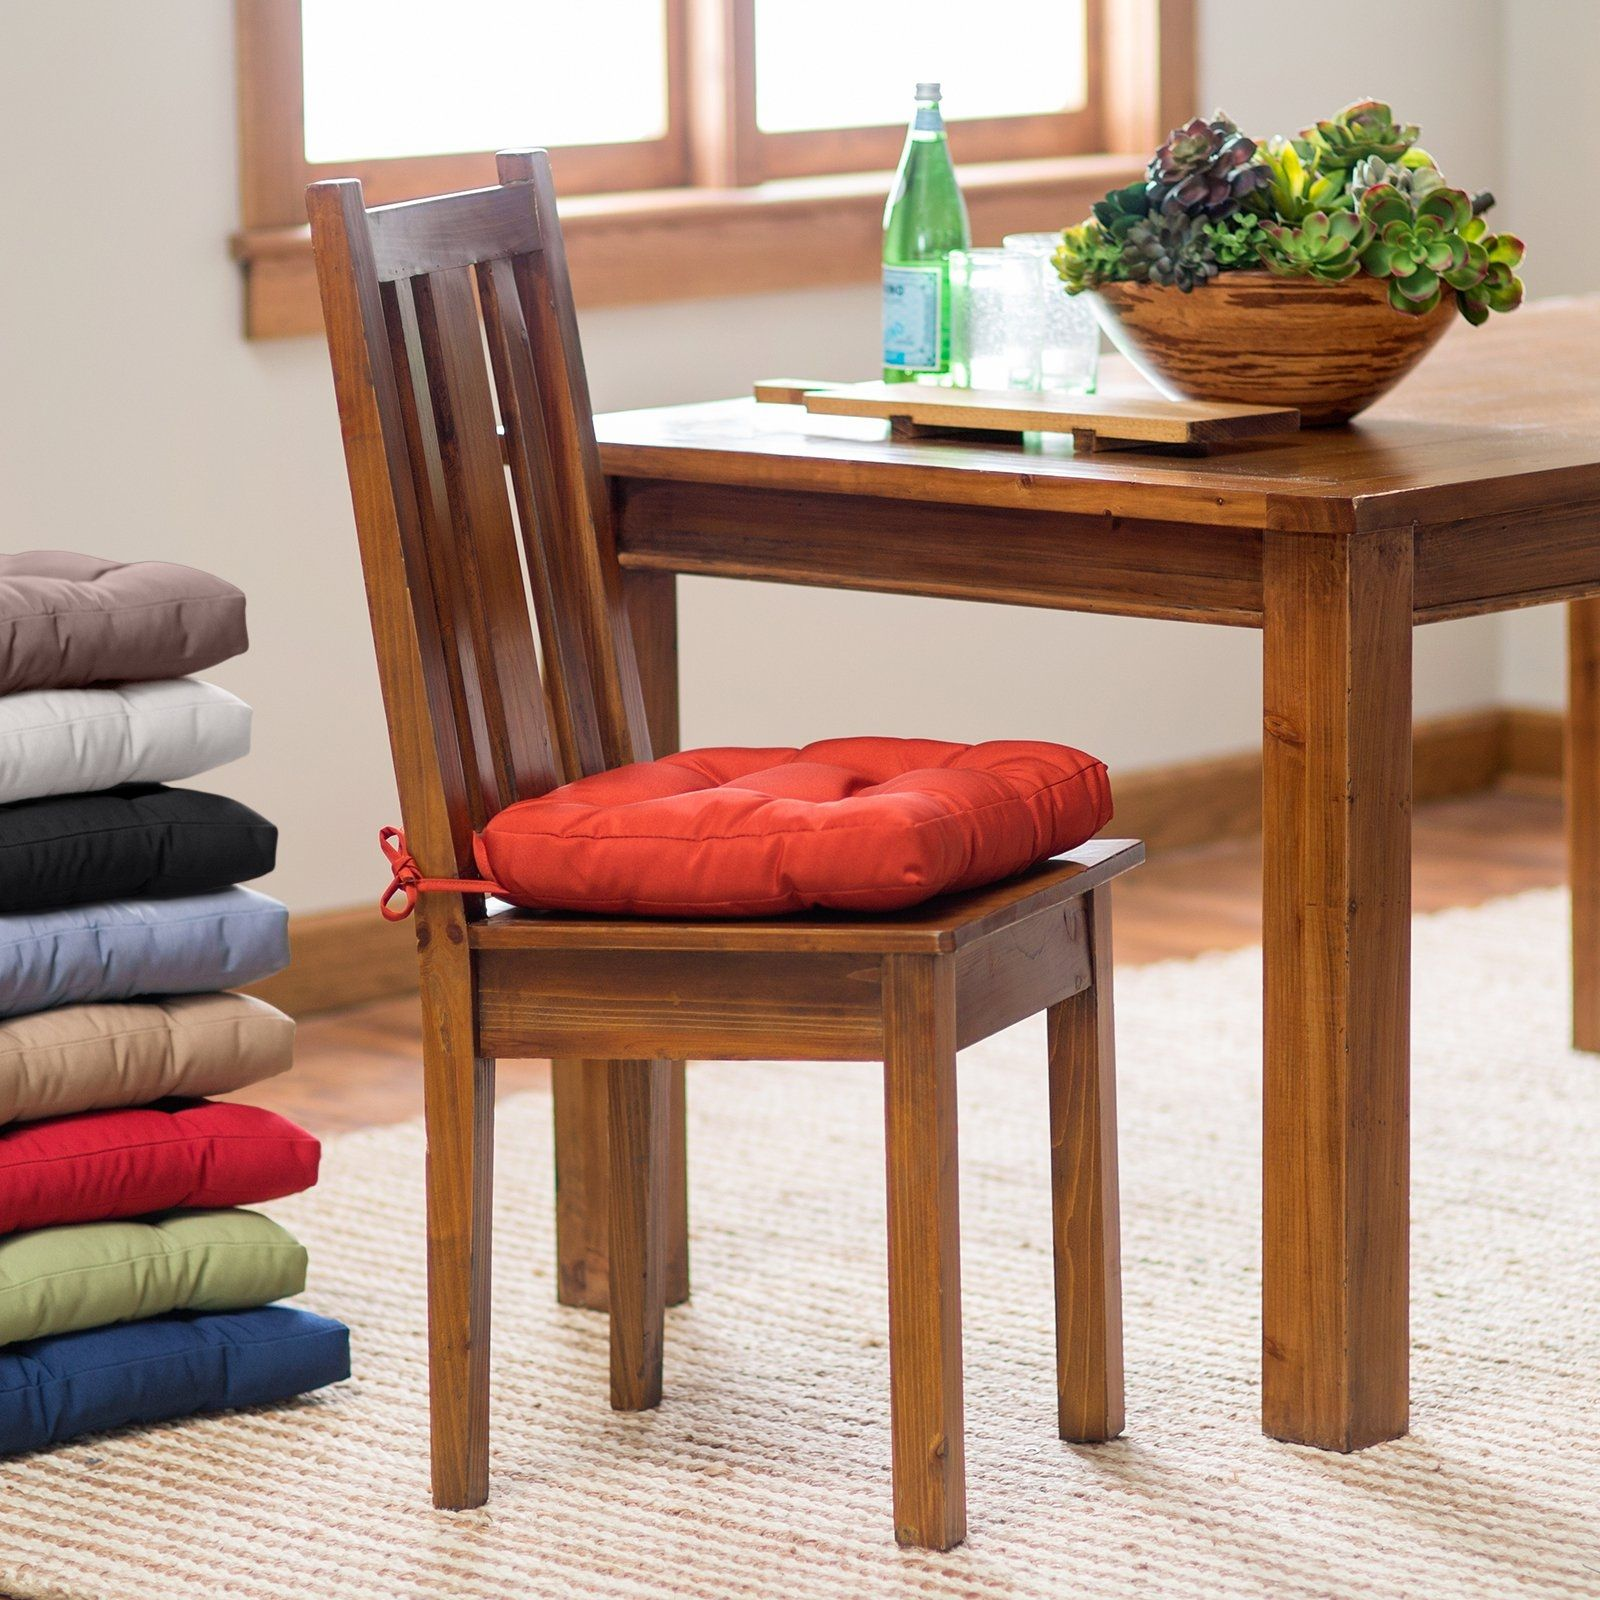 Chair Seat Cushion Covers  Httpimages11  Pinterest  Seat New Dining Room Chair Seat Pads Inspiration Design